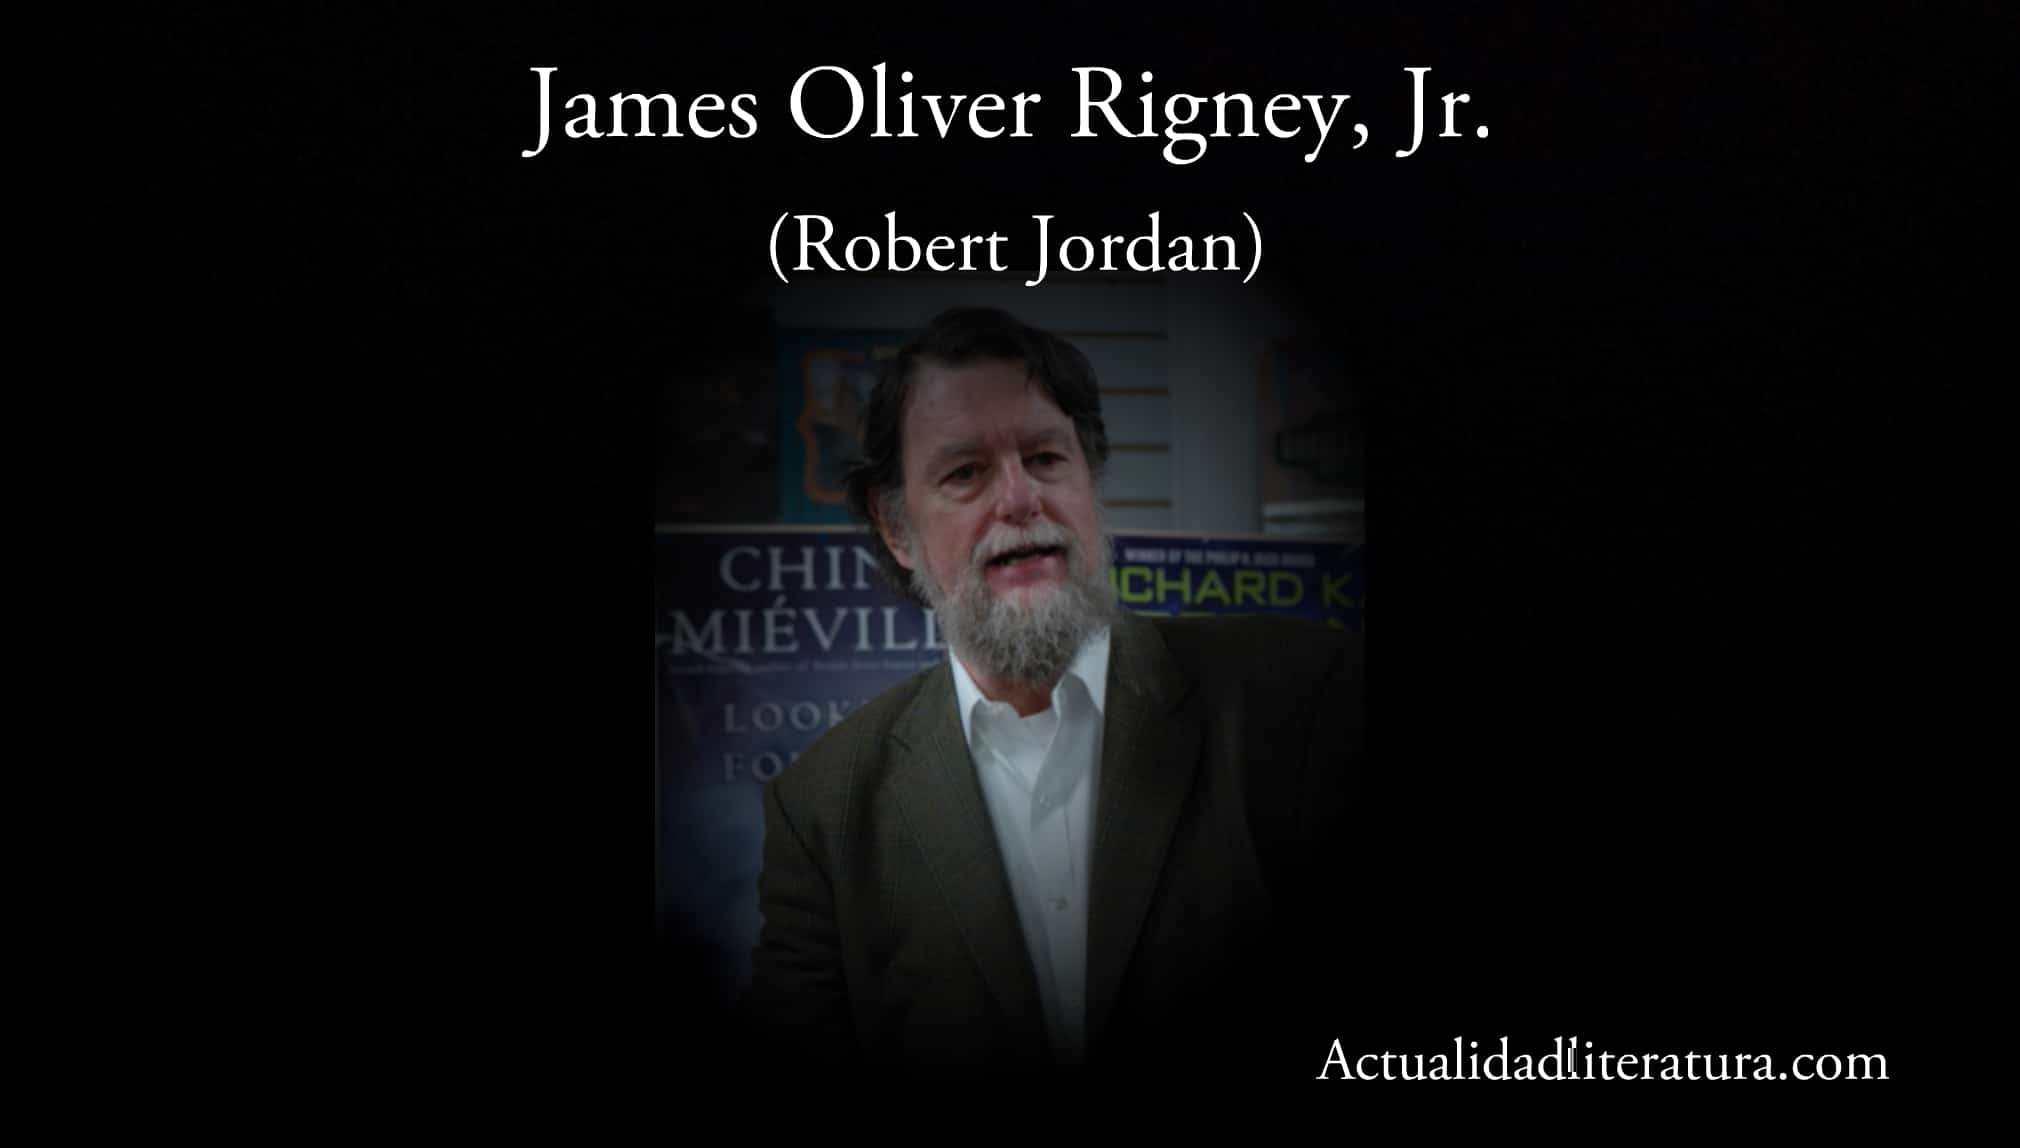 James Oliver Rigney, Jr.